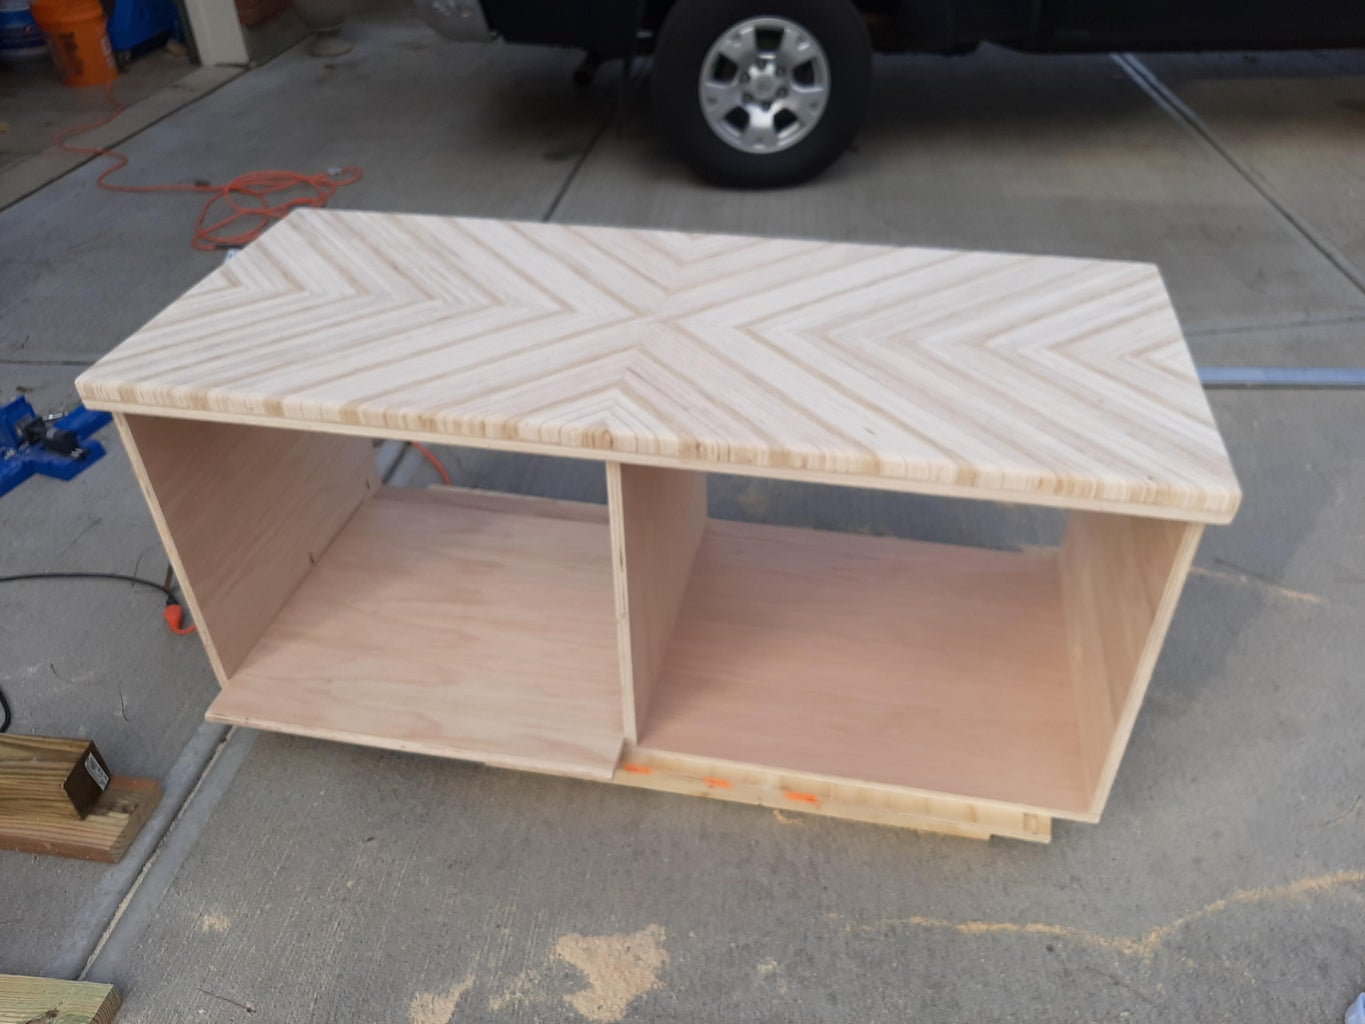 Build the Remaining Entertainment Center